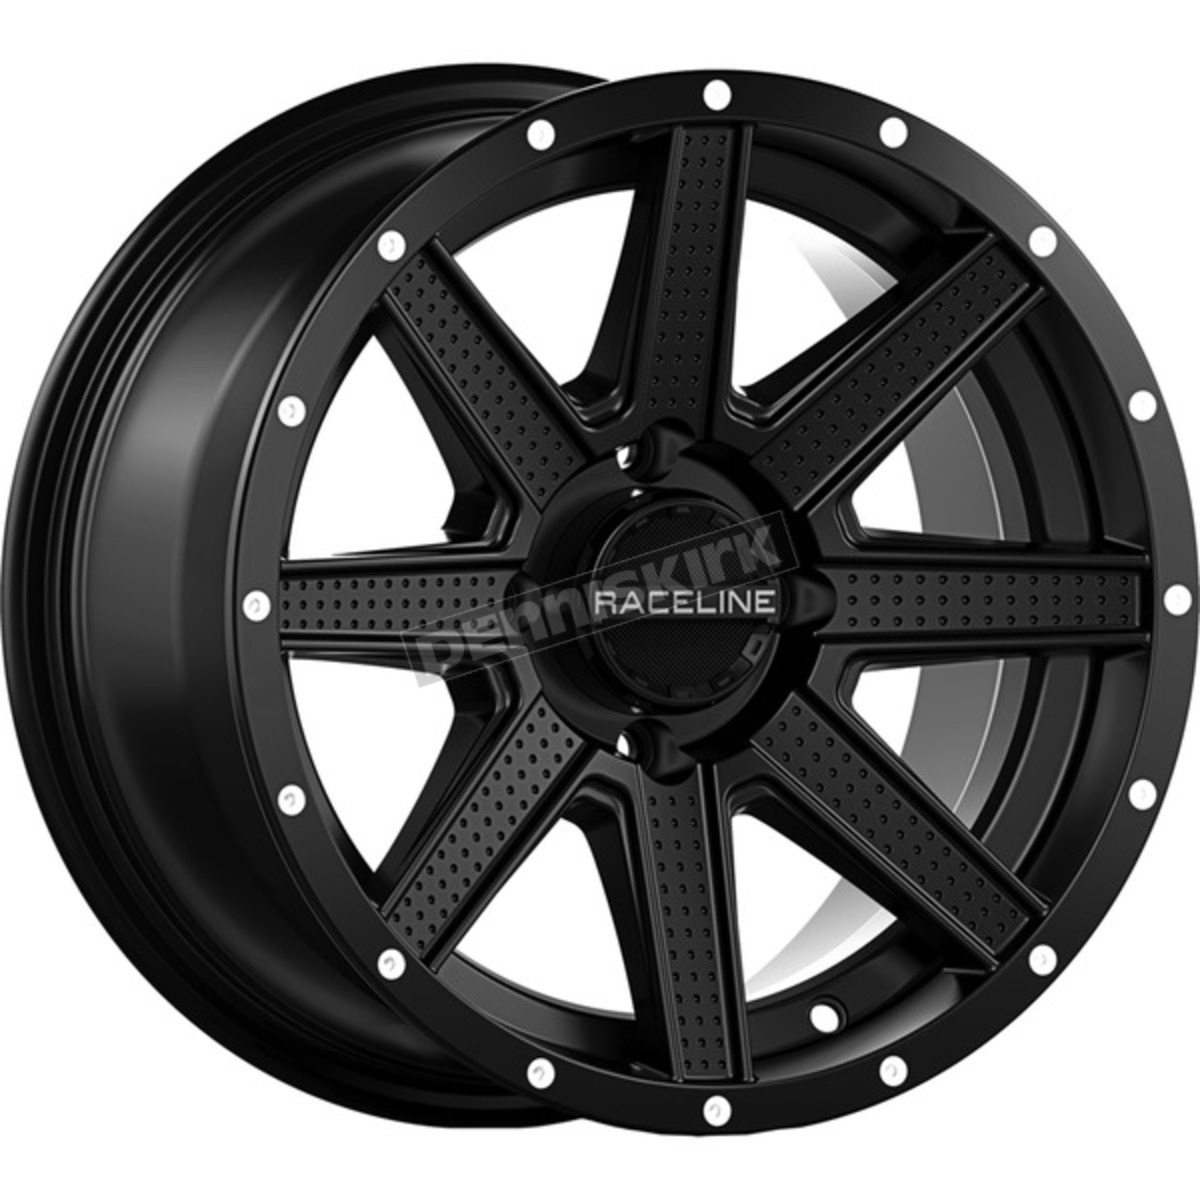 sedona black front rear hostage raceline 14x7 wheel a92b 47056 43 KFX 700 Exhaust sedona black front rear hostage raceline 14x7 wheel a92b 47056 43